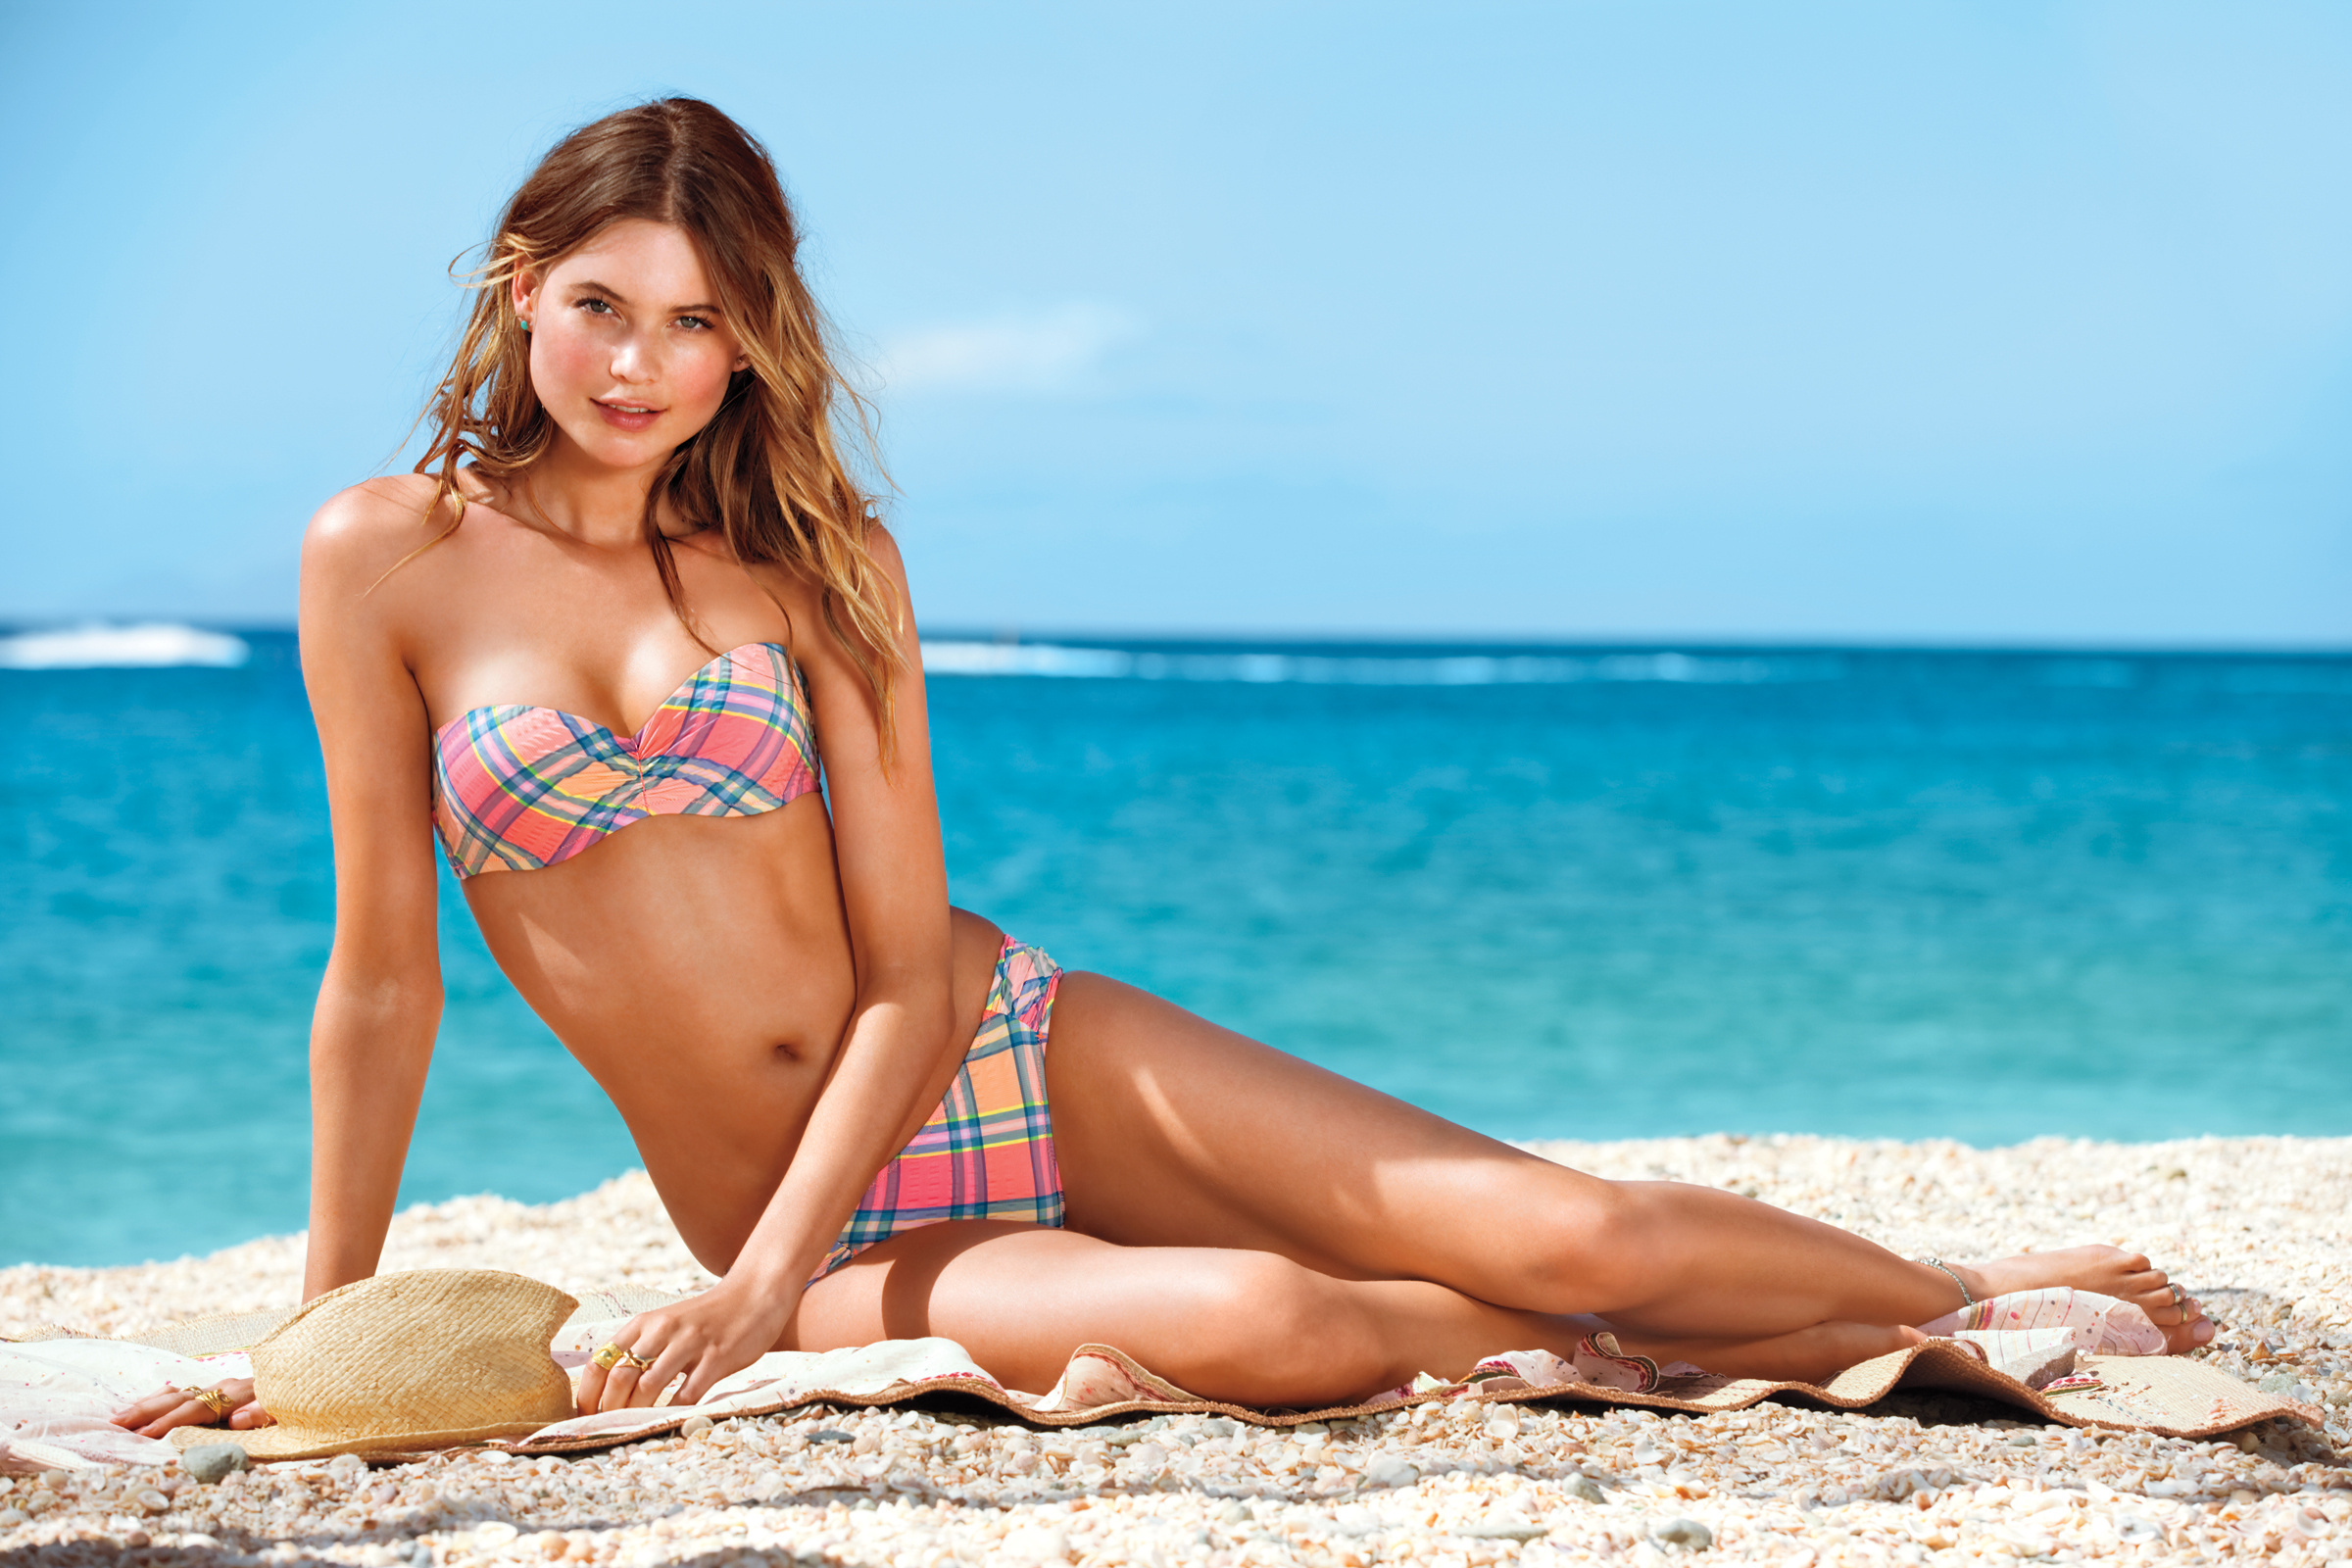 behati prinsloo bathing suit wallpaper 63452